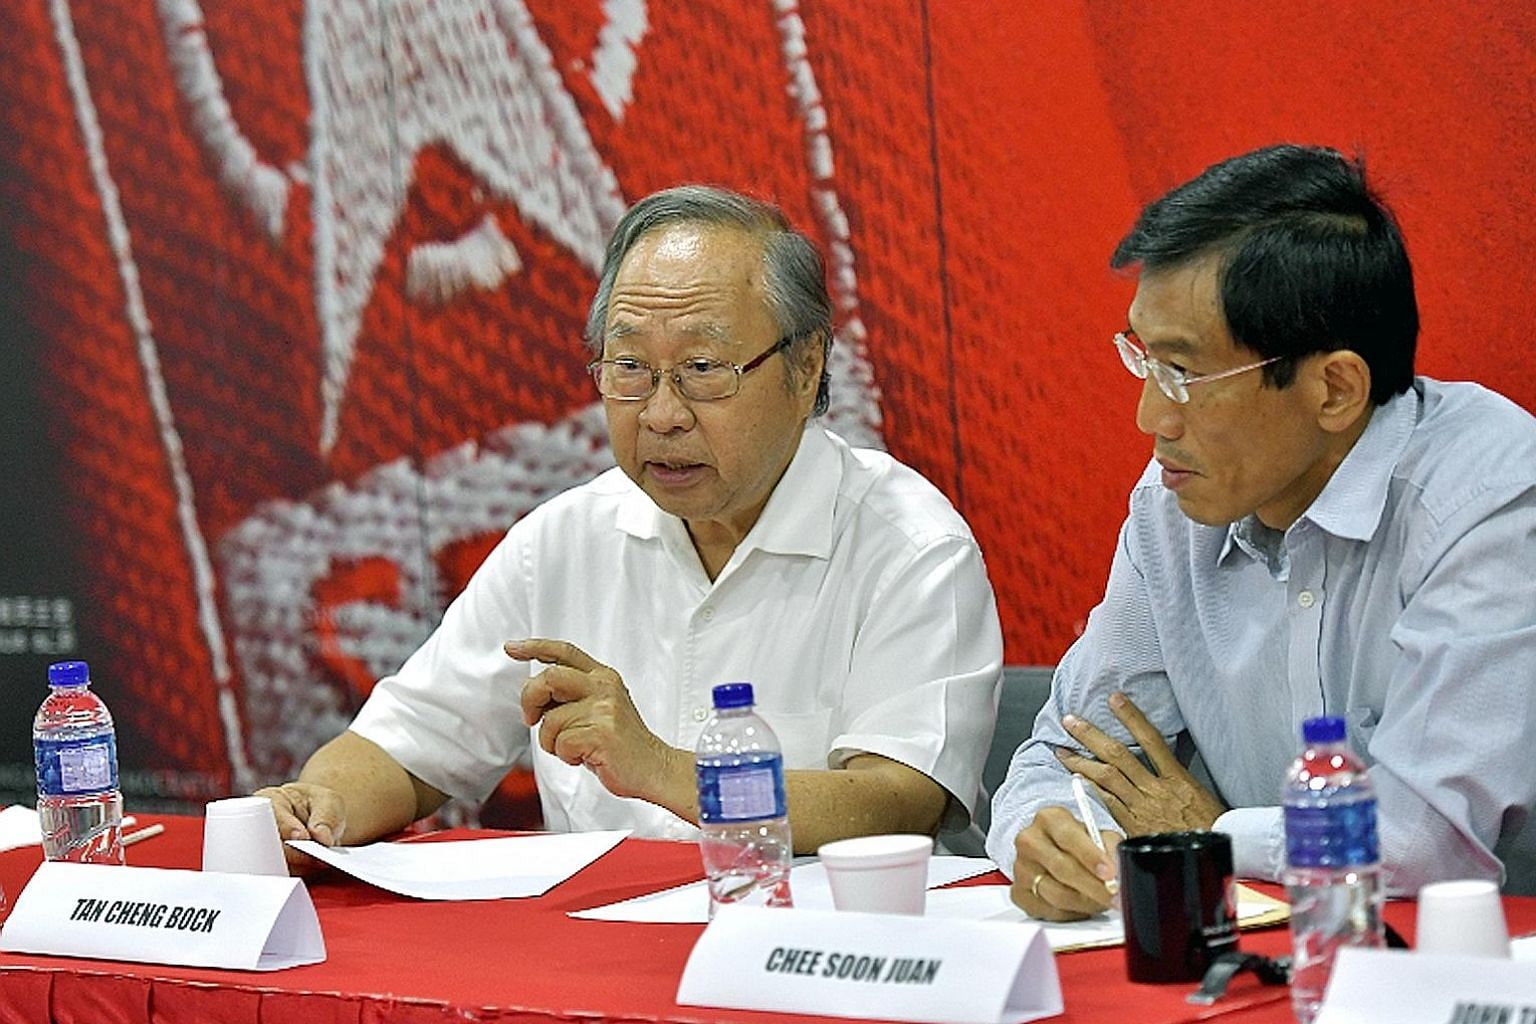 Former PAP MP Tan Cheng Bock (left) and SDP chief Chee Soon Juan at Saturday's meeting. Efforts to form an alliance had been ongoing without success, but the Malaysian election result was a turning point, said opposition leaders.